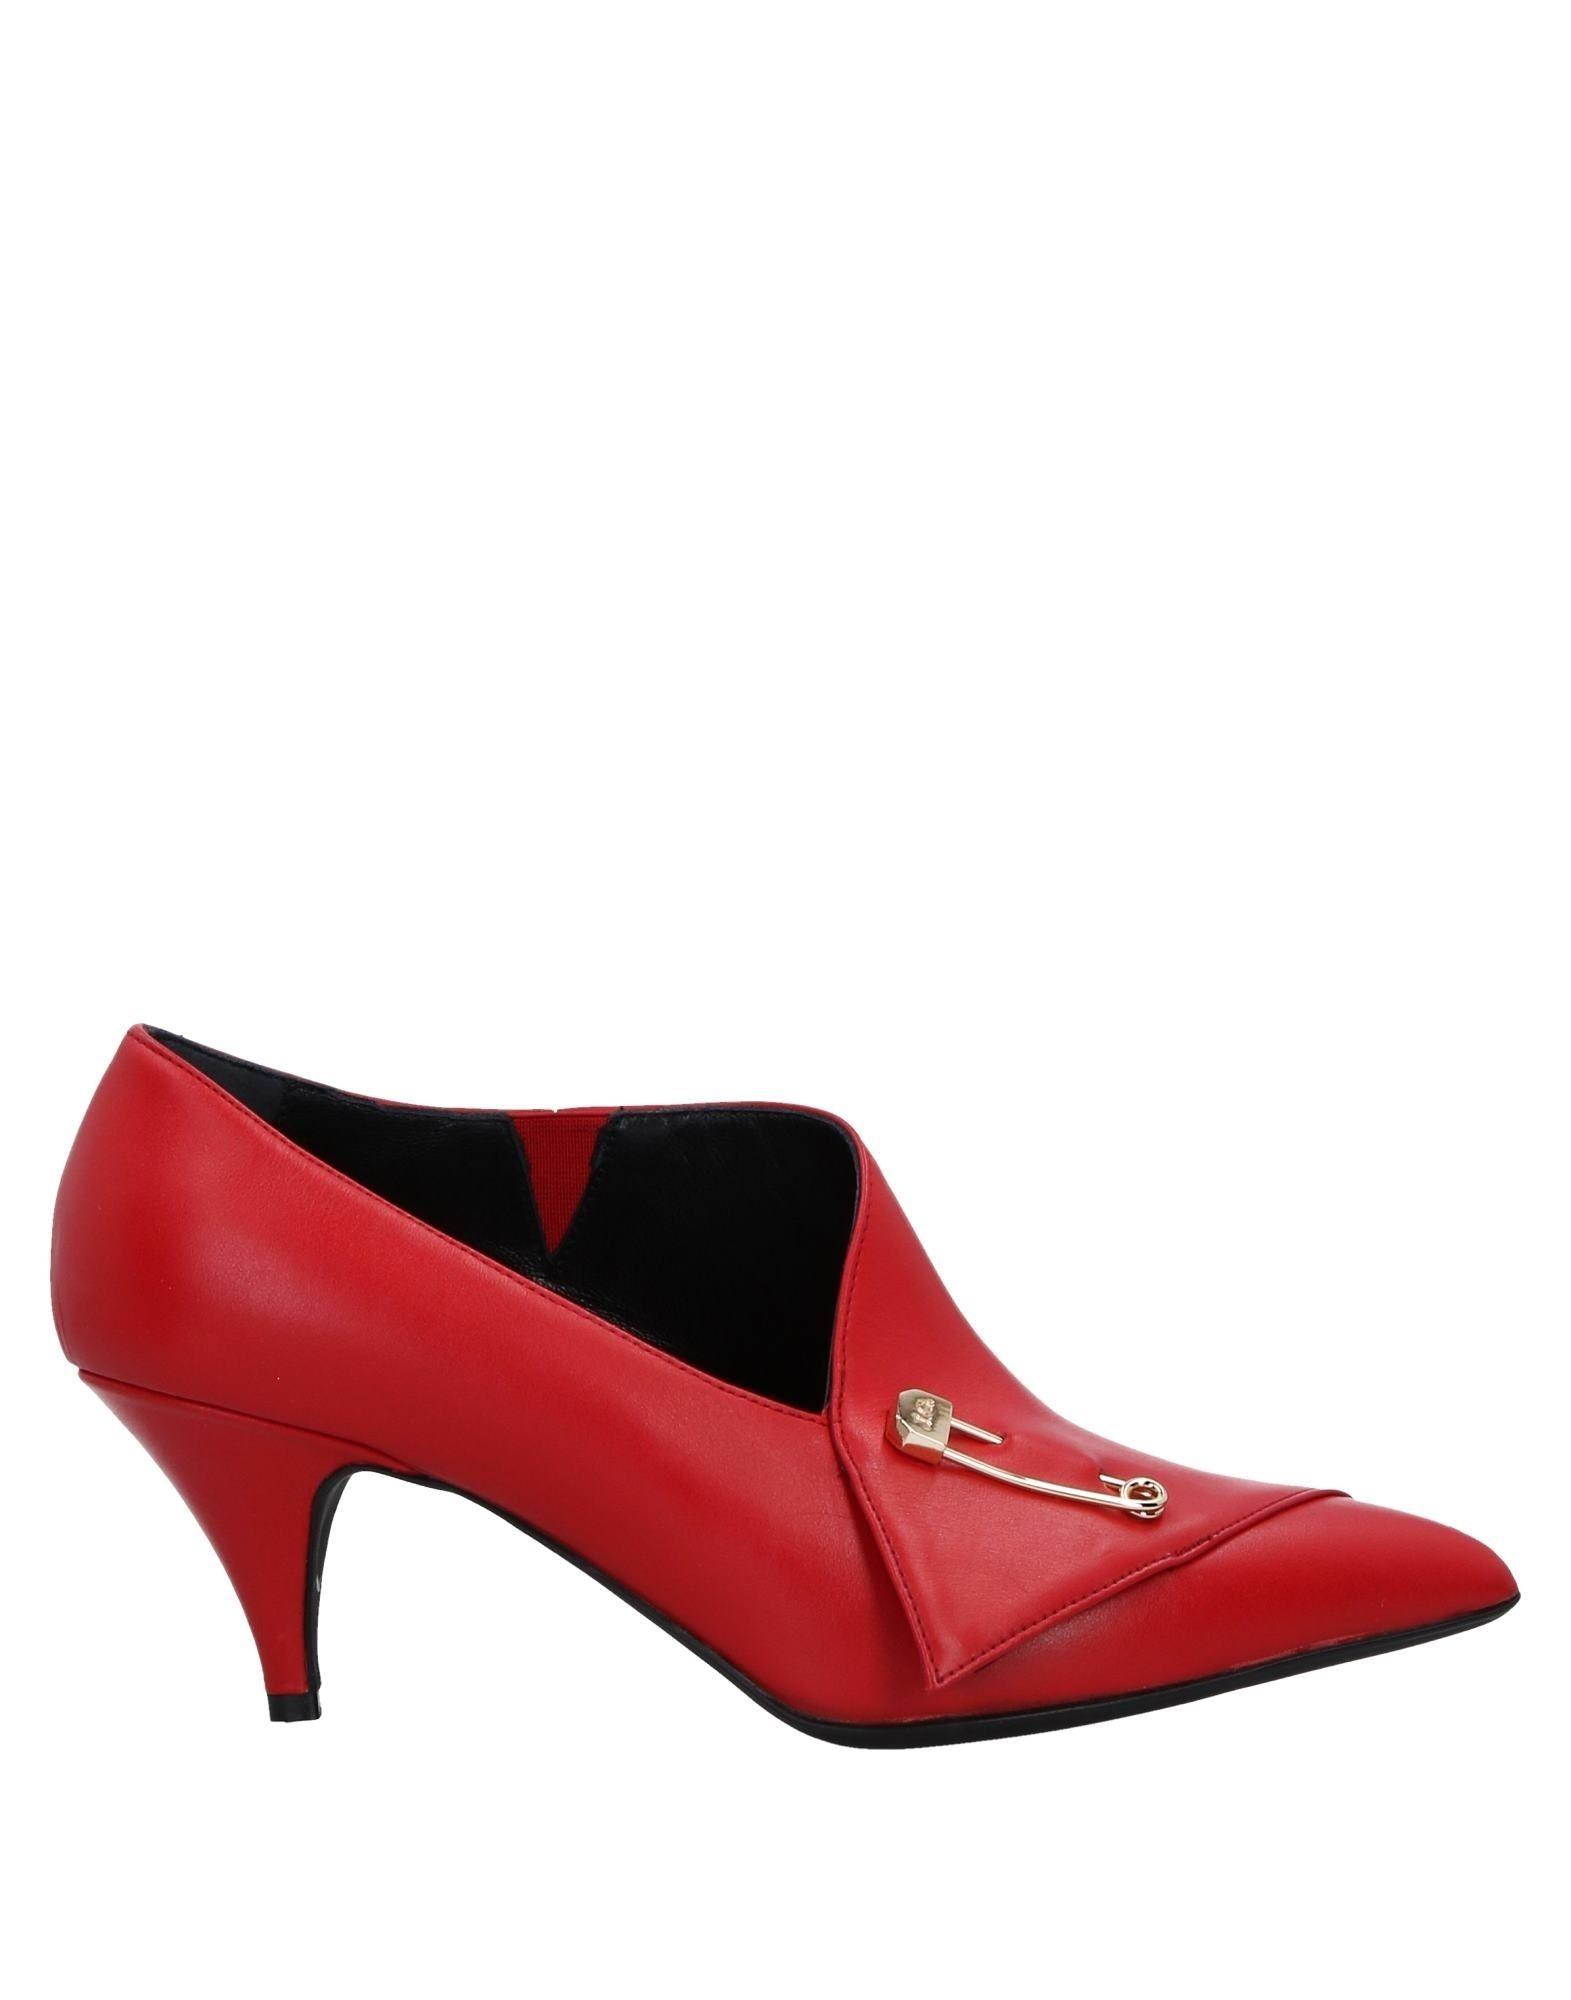 John Galliano Ankle Boot In Red